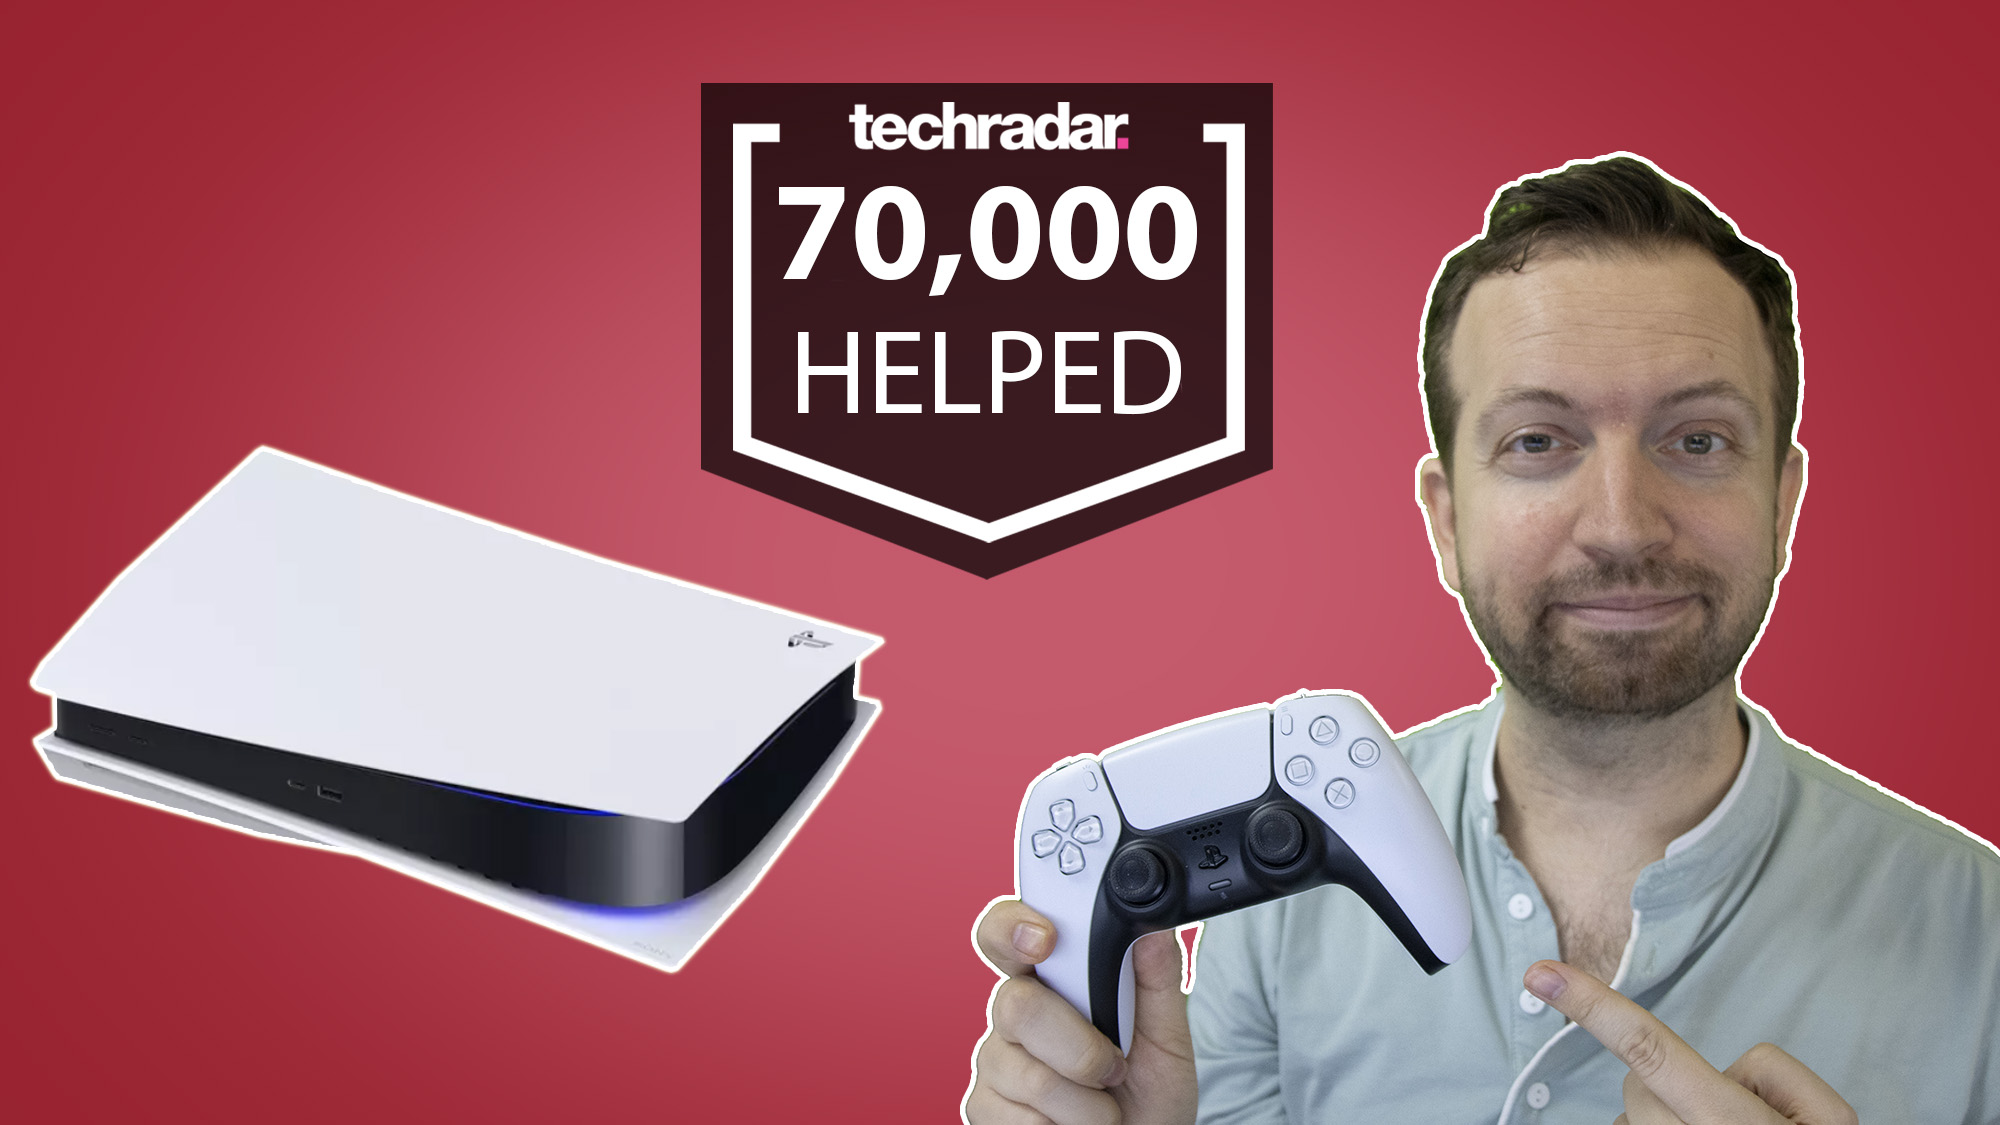 PS5 restock tracker Matt Swider posing with a PlayStation 5 console